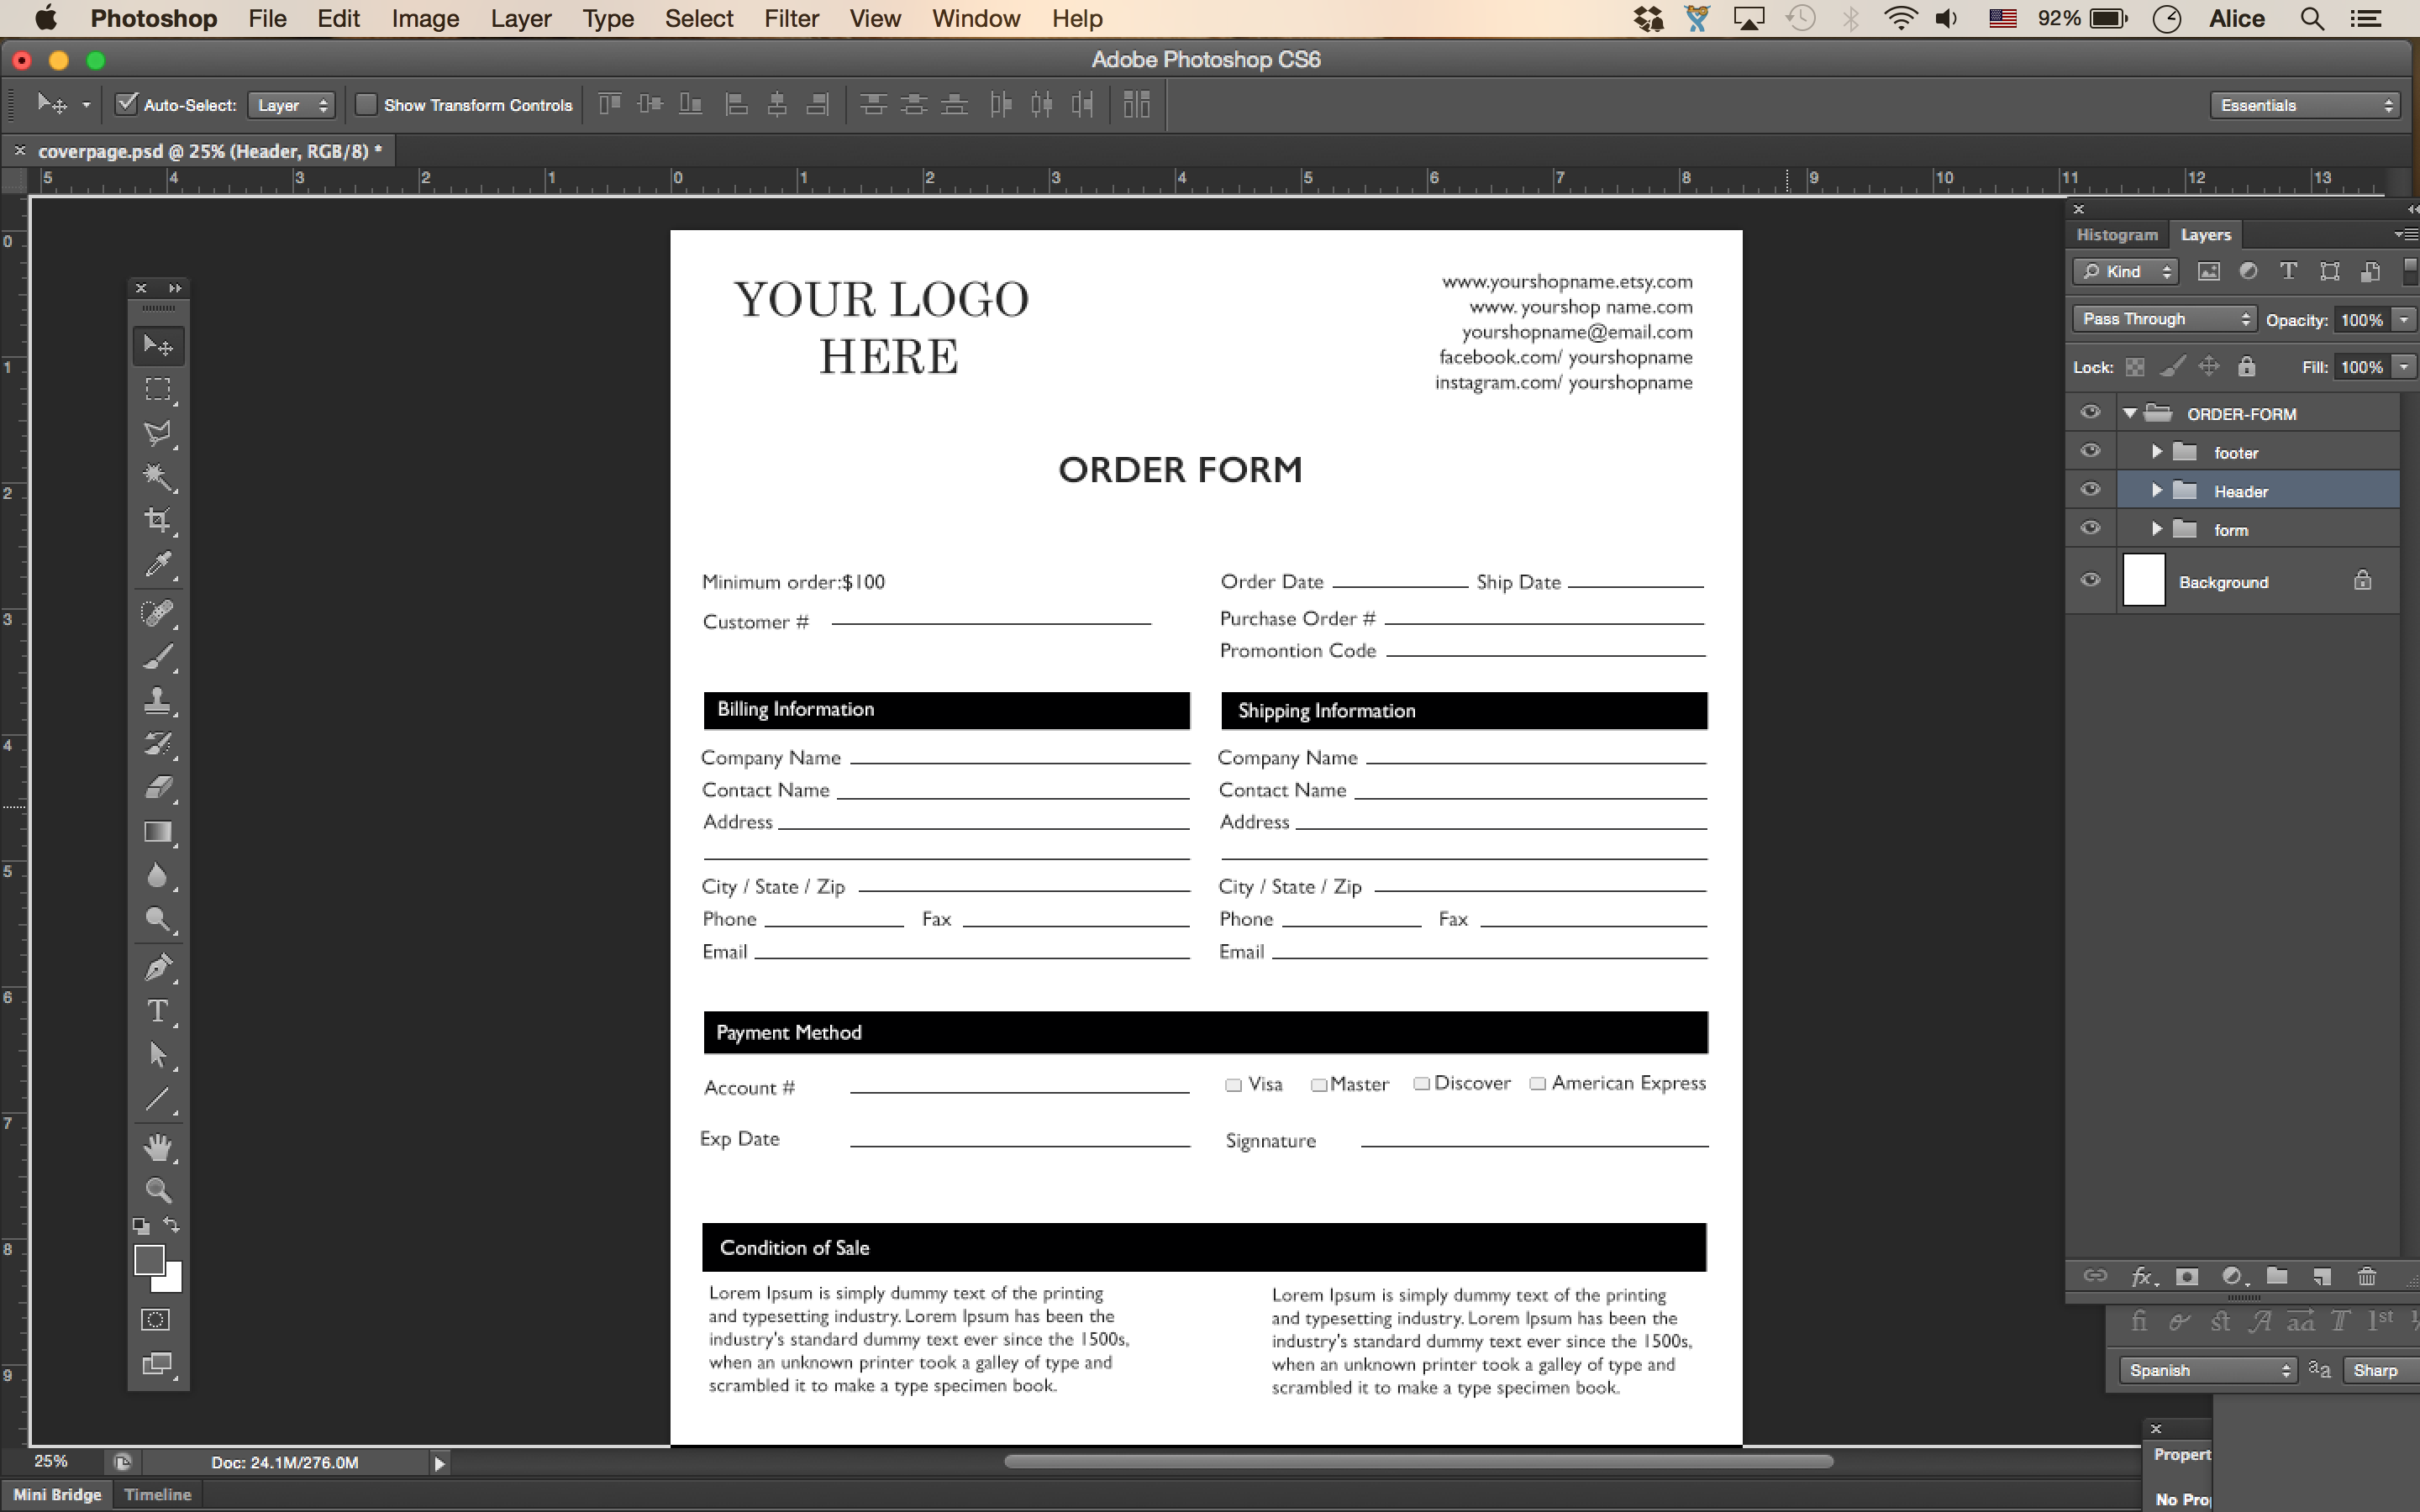 price sheet  order form template  cover order form  vertical line sheet  wholesale catalog template